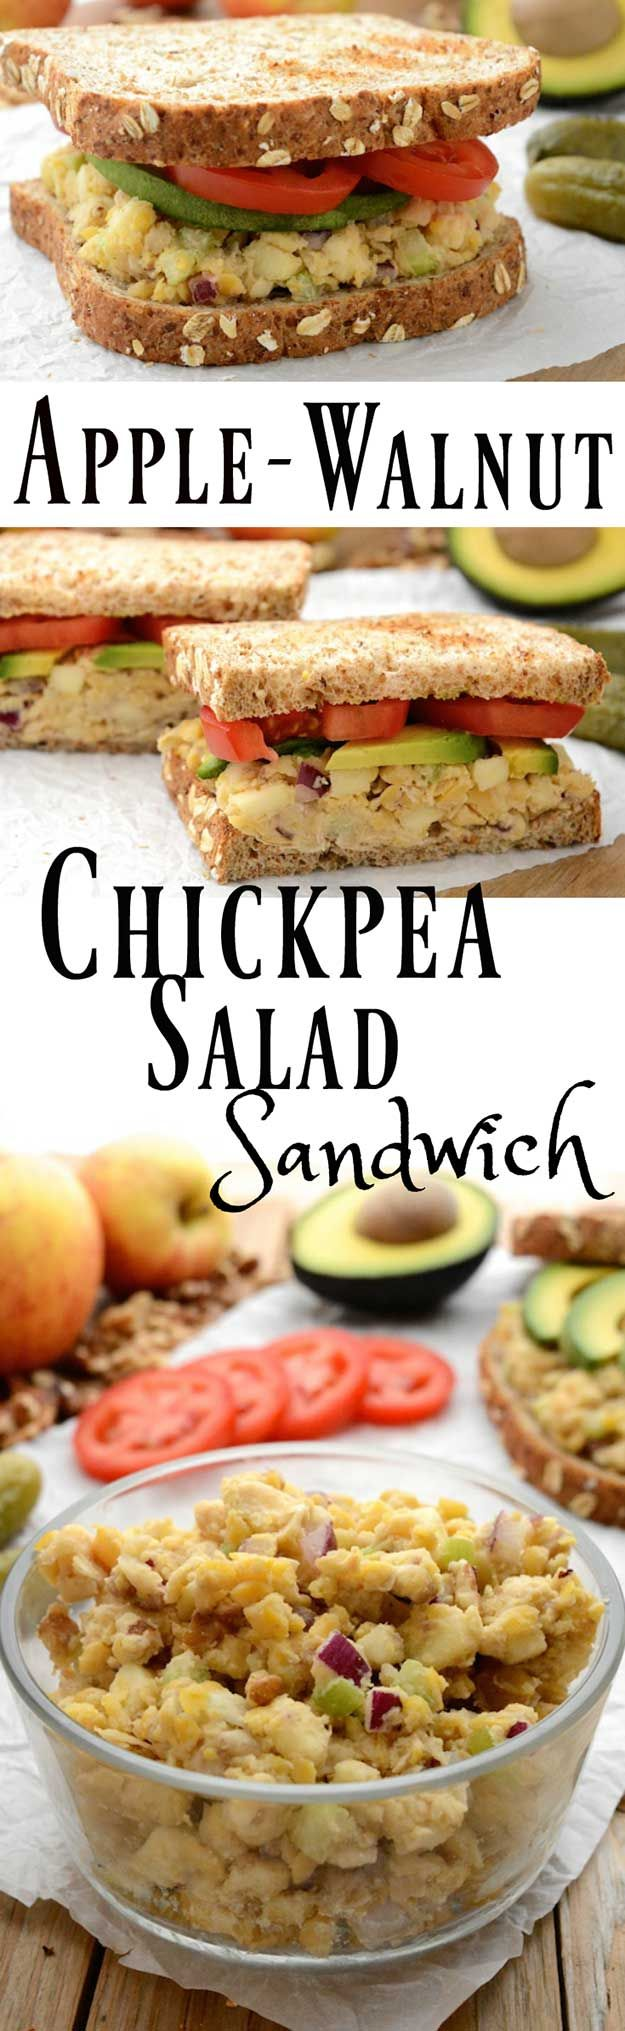 Healthy Lunches for Work - Apple-Walnut Chickpea Salad Sandwich - Easy, Quick and Cheap Clean Eating Recipes That You Can Take To Work - Weekly Meals That Are Great for Health Fitness and Weightloss - Low Fat Recipe Ideas and Simple Low Carb Meals That are High In Protein and Taste Great Cold - Vegetarian Options and Weight Watchers Friendly Ideas that Require No Heat - http://thegoddess.com/healthy-lunches-for-work